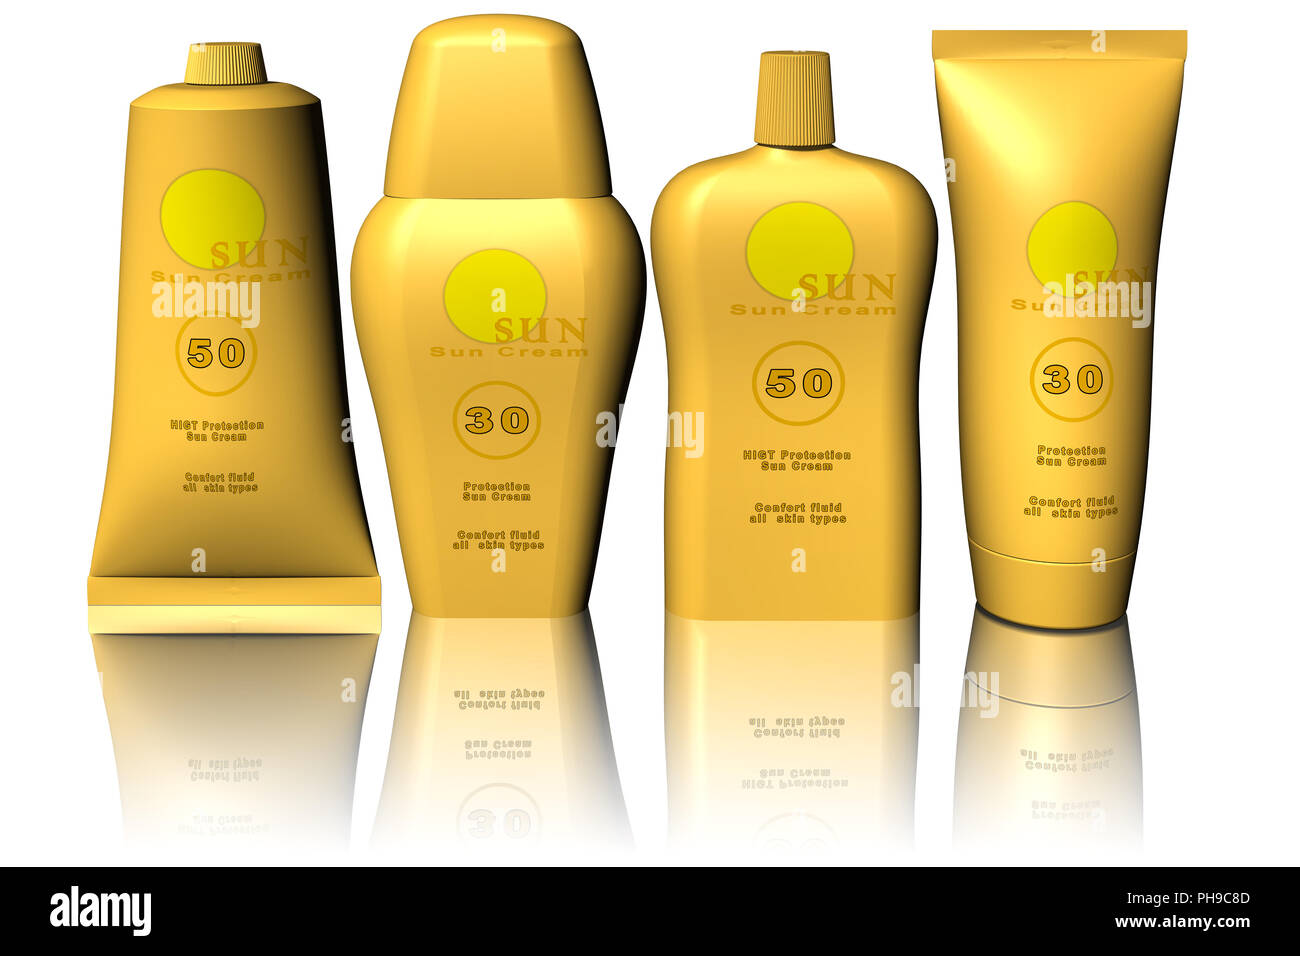 3D illustration. Sunscreen. Products for the beach isolated on white background. - Stock Image